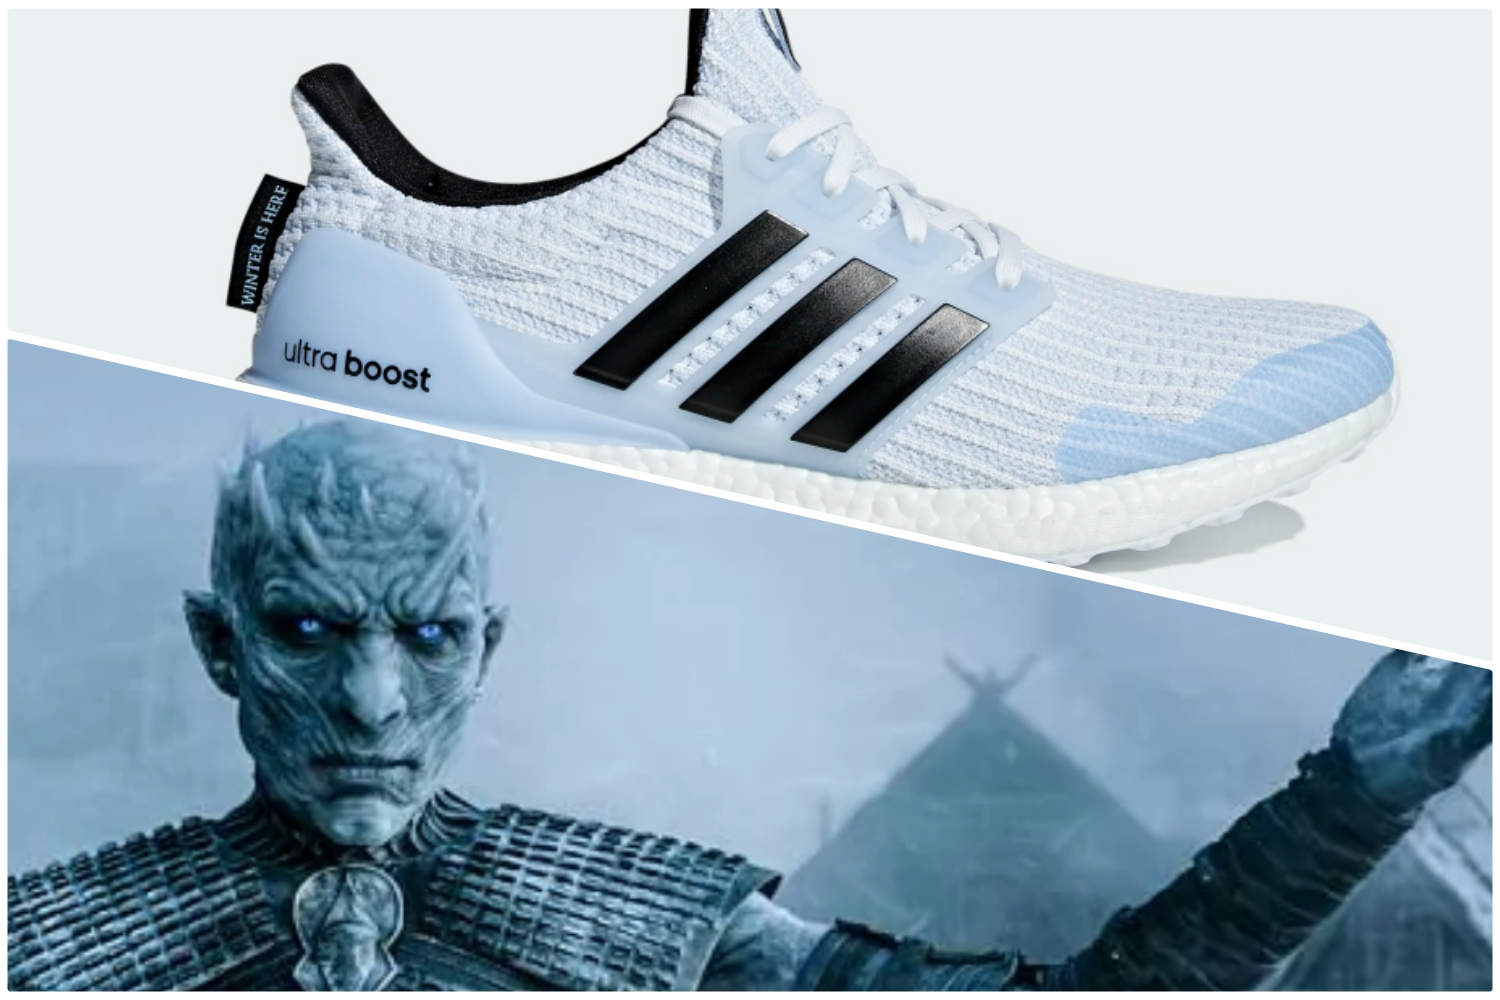 Adidas Made Game of Thrones Sneakers to